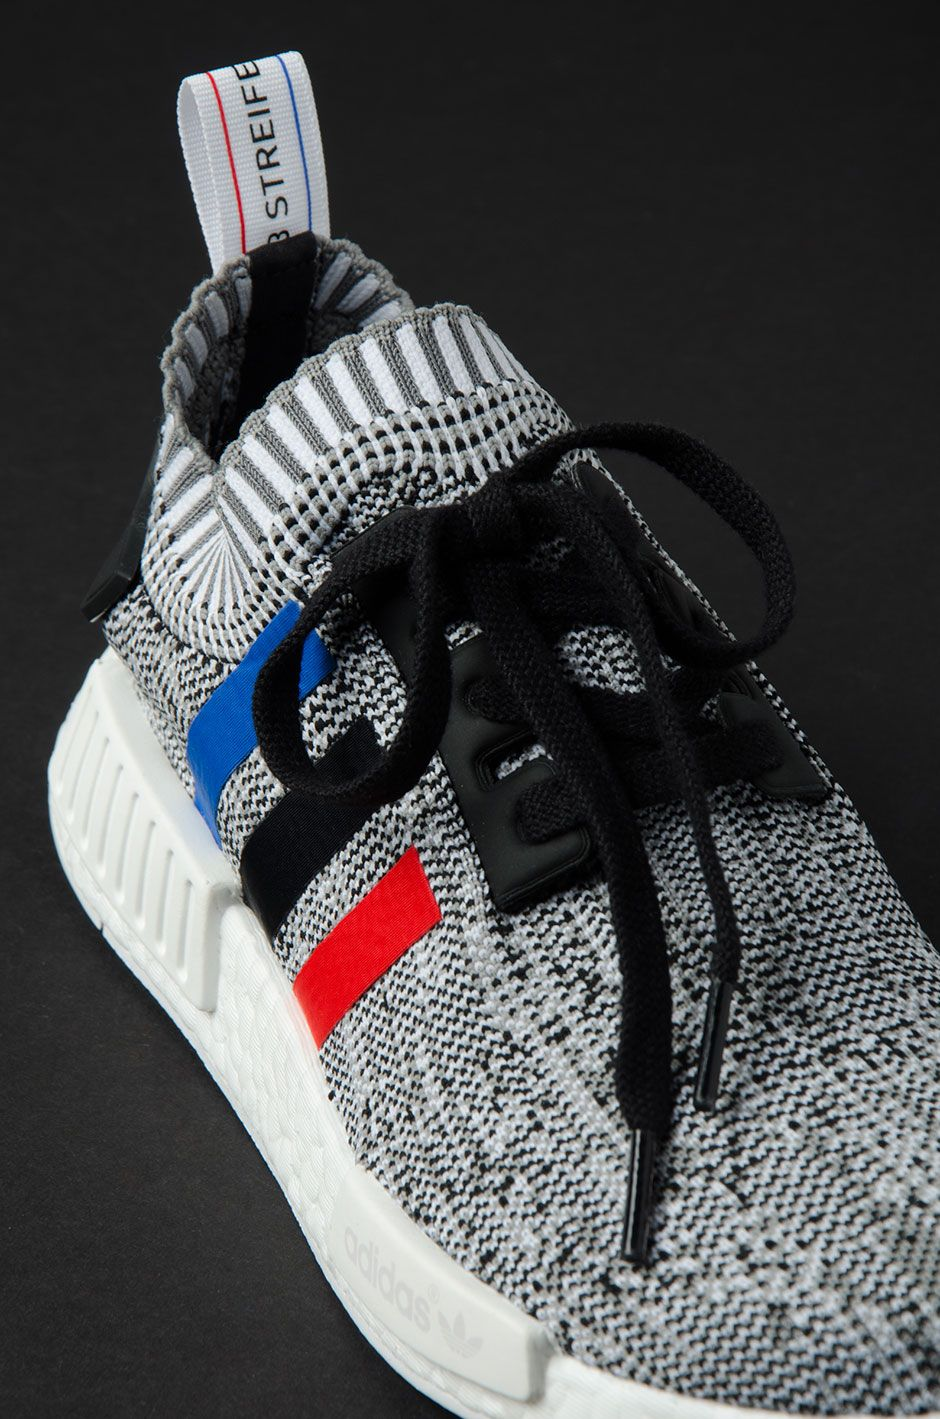 Adidas Nmd R1 Primeknit Tri Color Pack Nike Shoes Online Nike